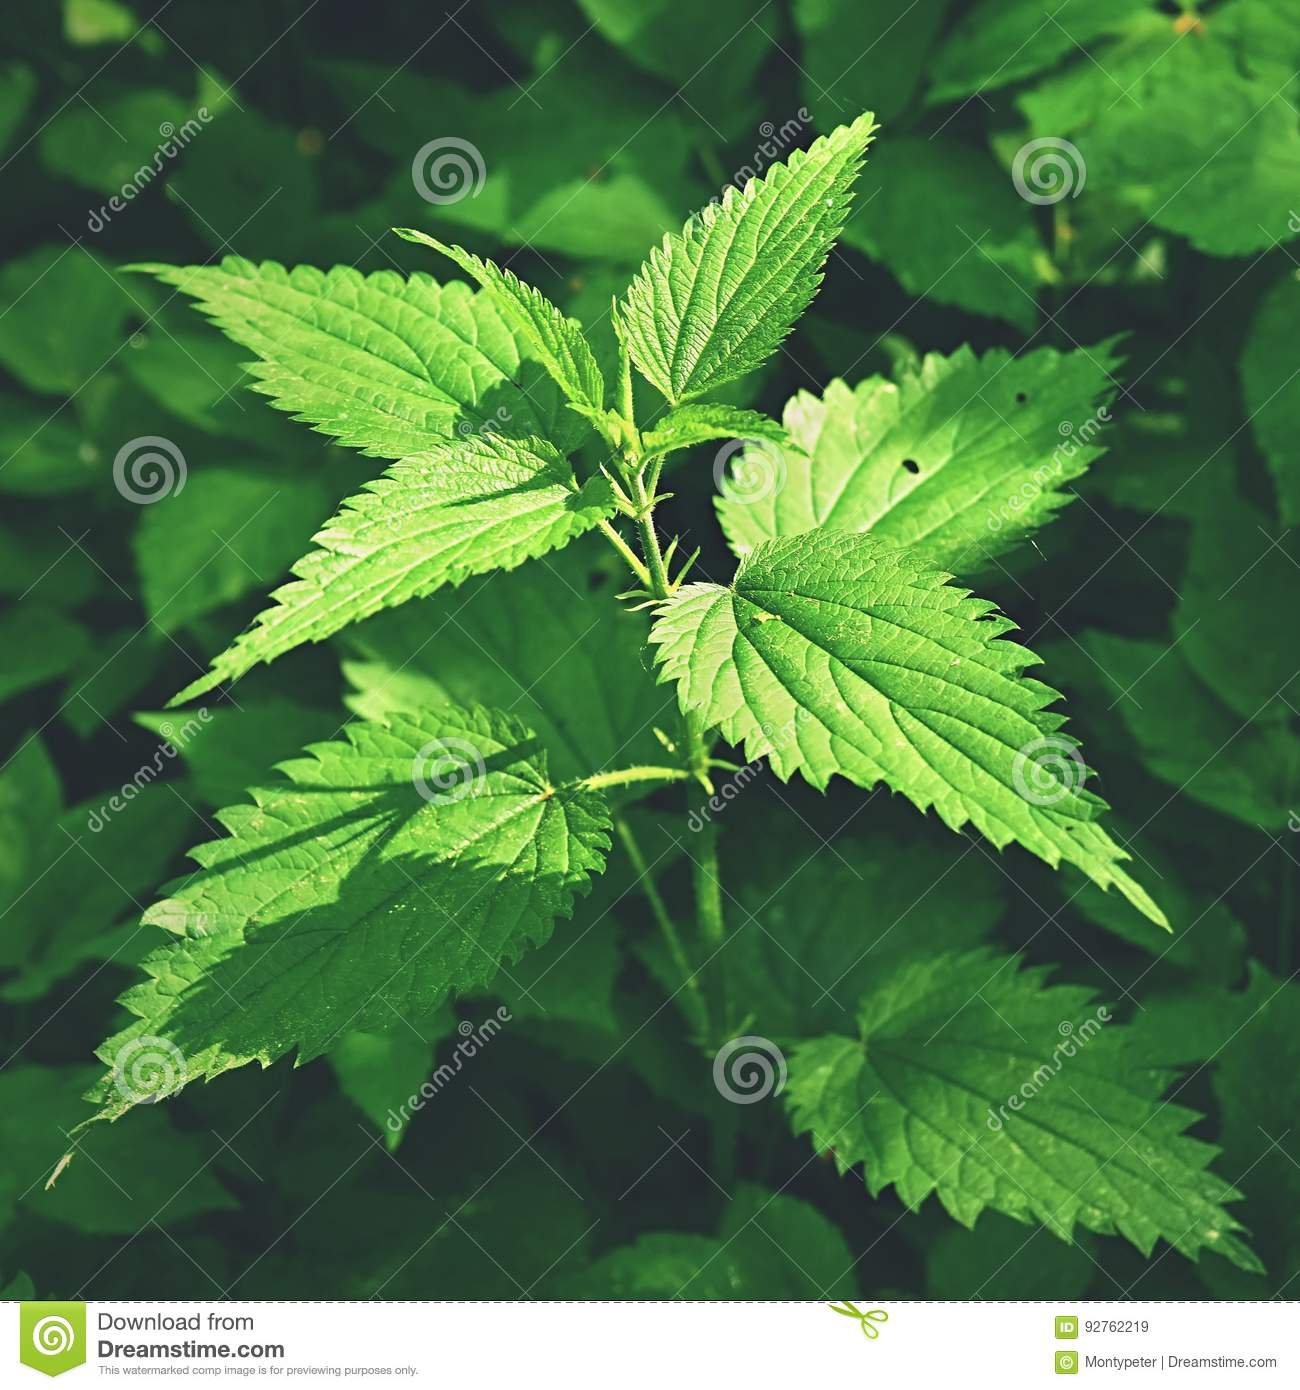 Beautiful nettle in nature with sun. Urtica dioicaBeautiful nettle in nature with sun. Urtica dioica. A healthy herb.